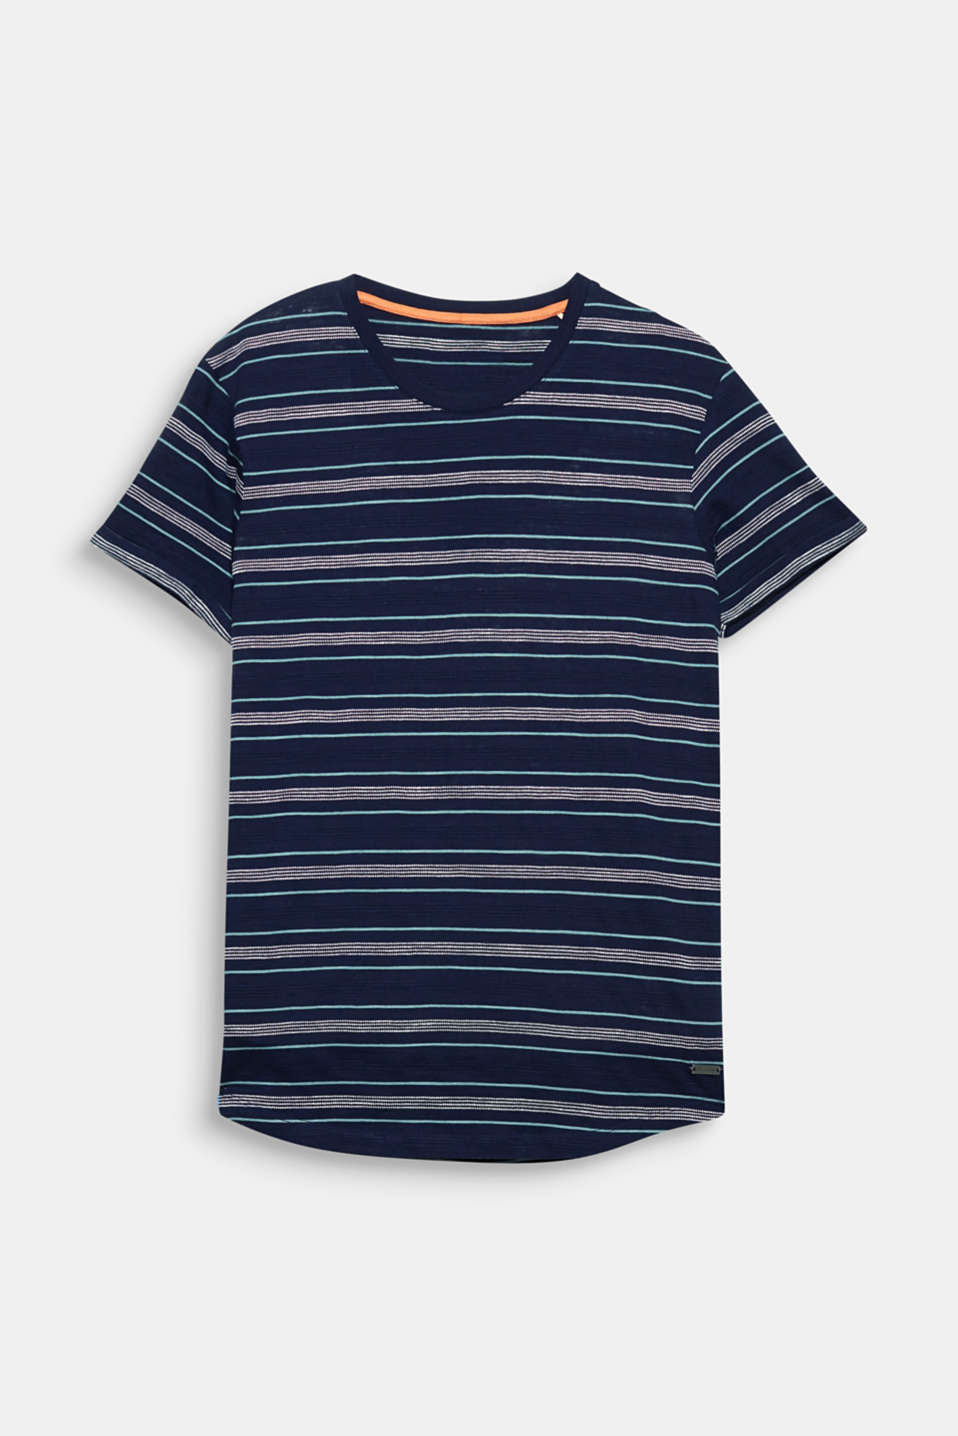 The fine textured stripes give this T-shirt a fresh, sporty look.